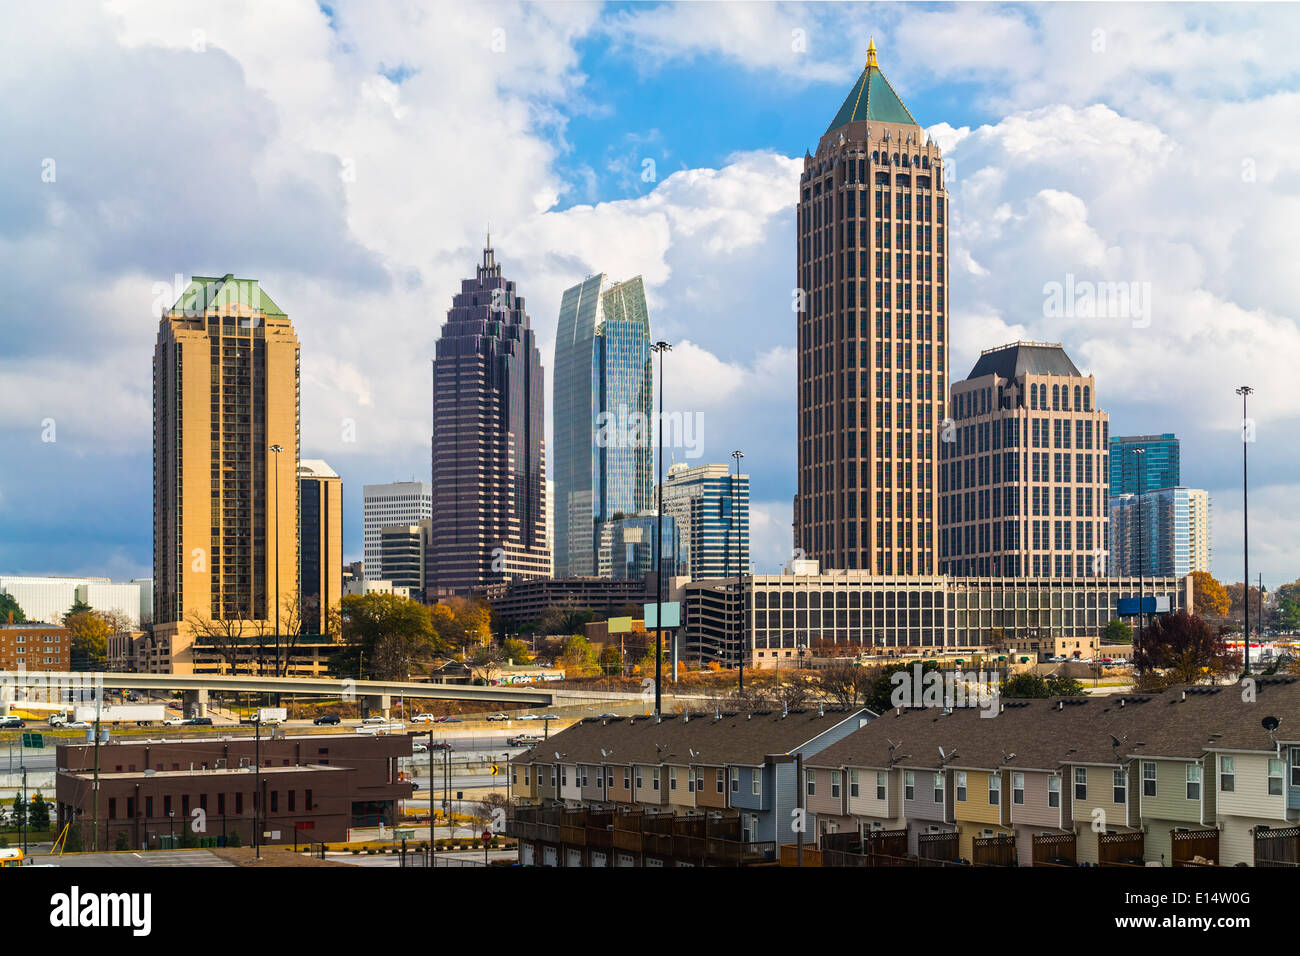 Skyline of Midtown Atlanta, Georgia, USA - Stock Image